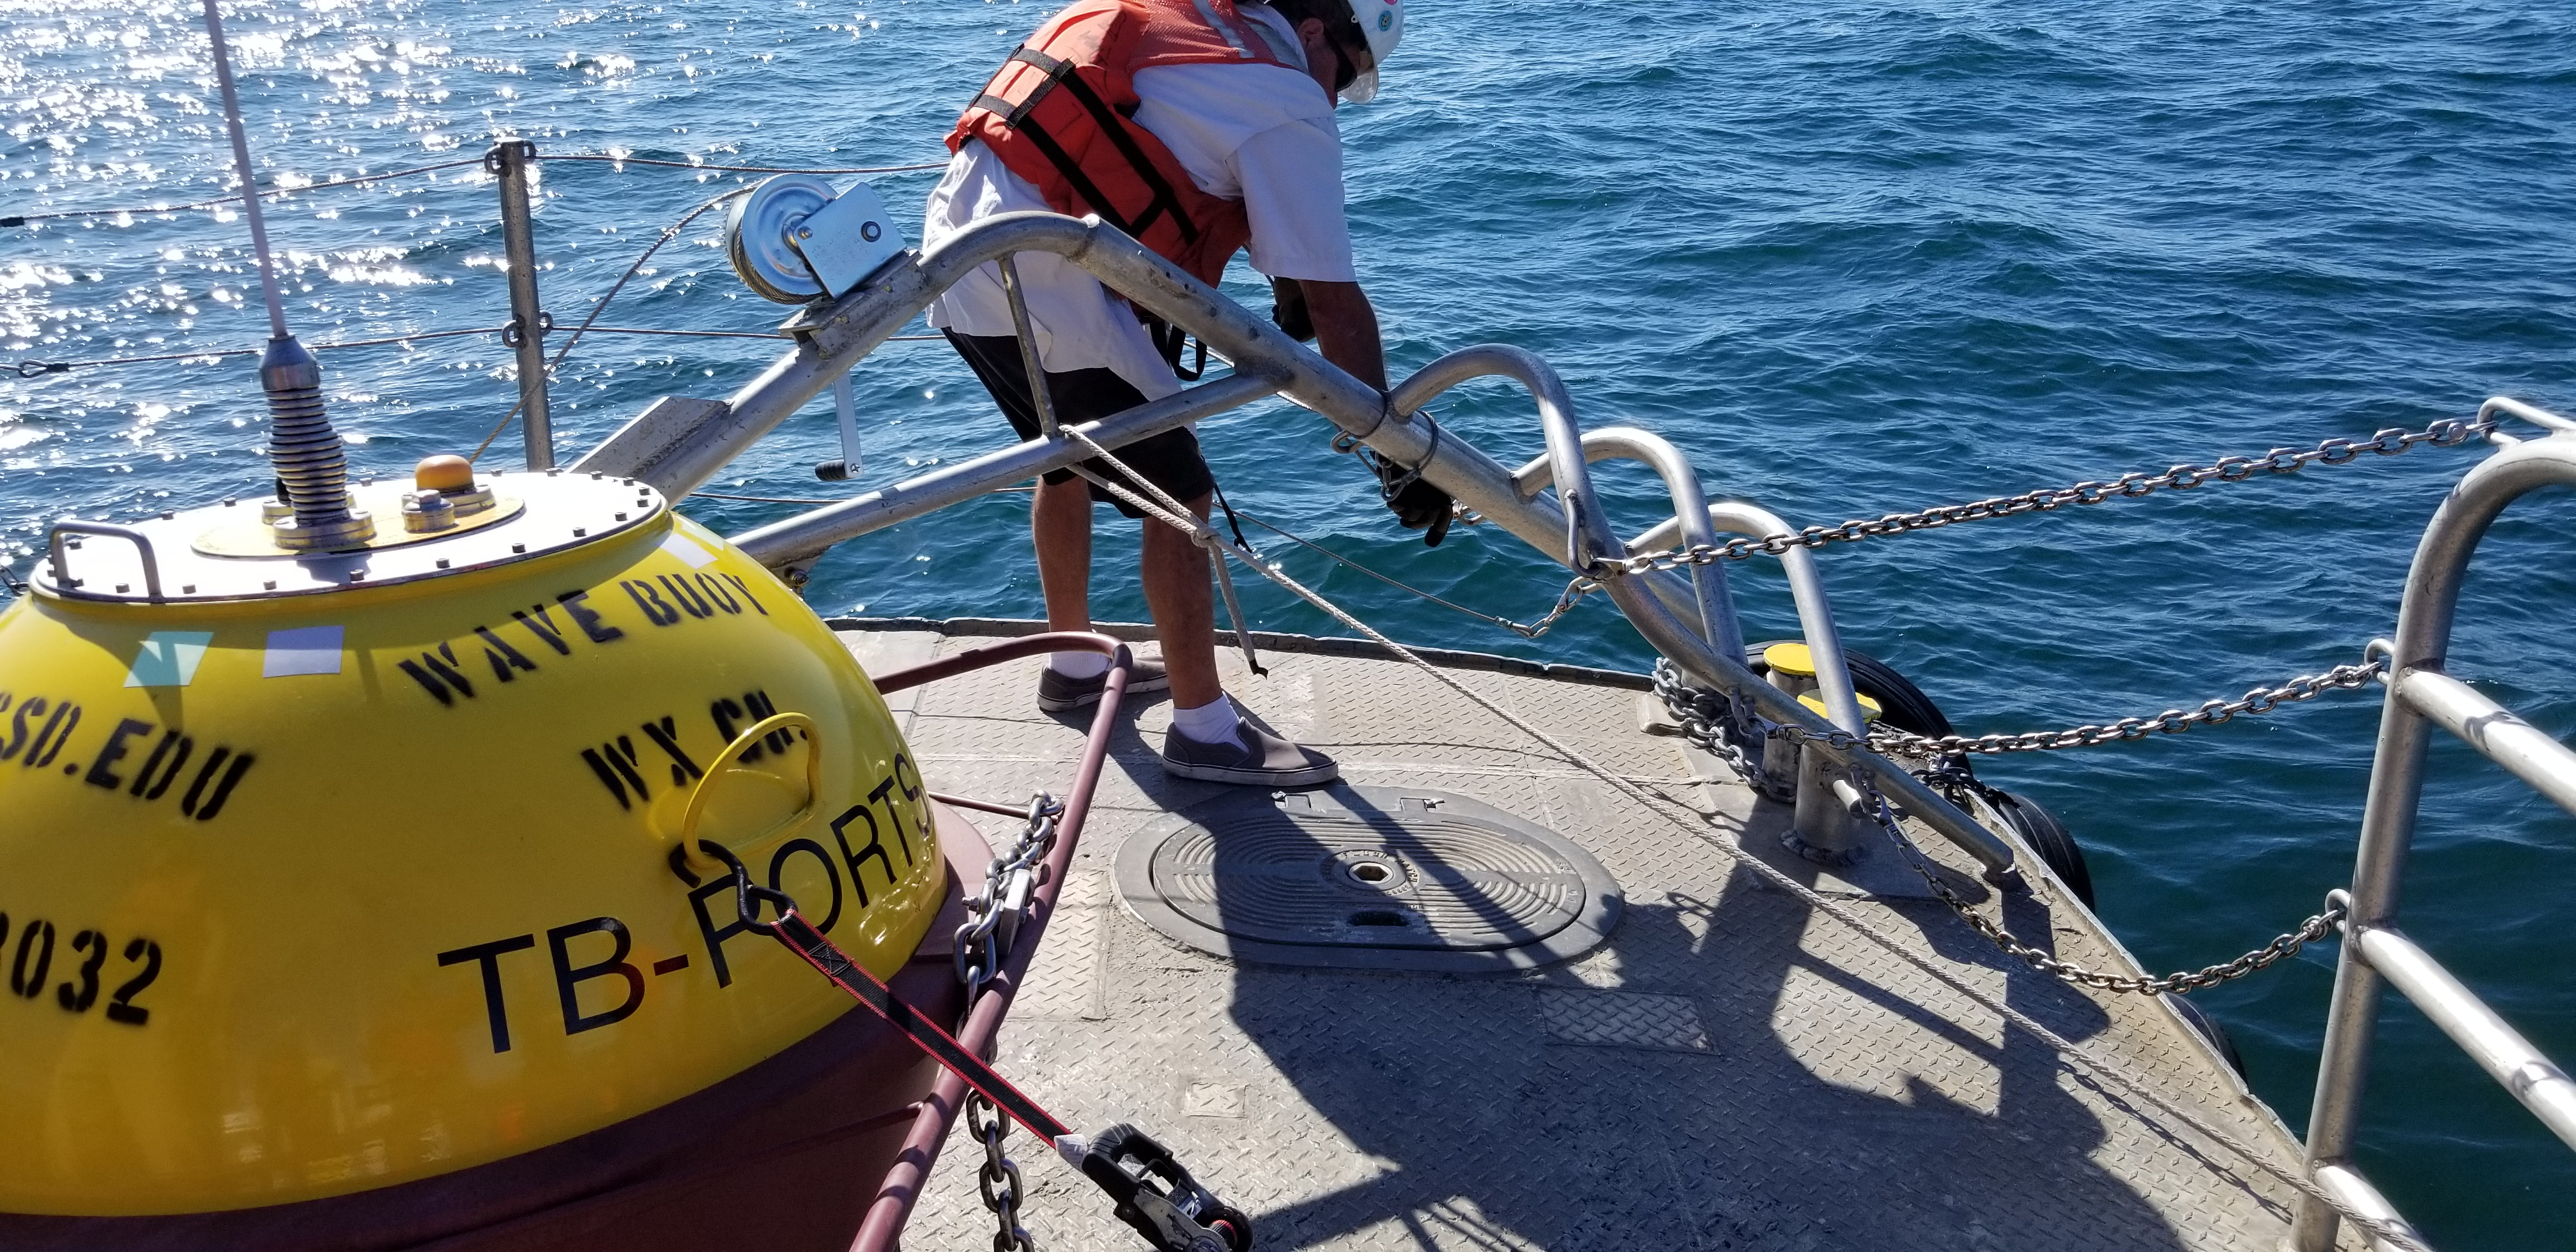 Davit fails during recovery